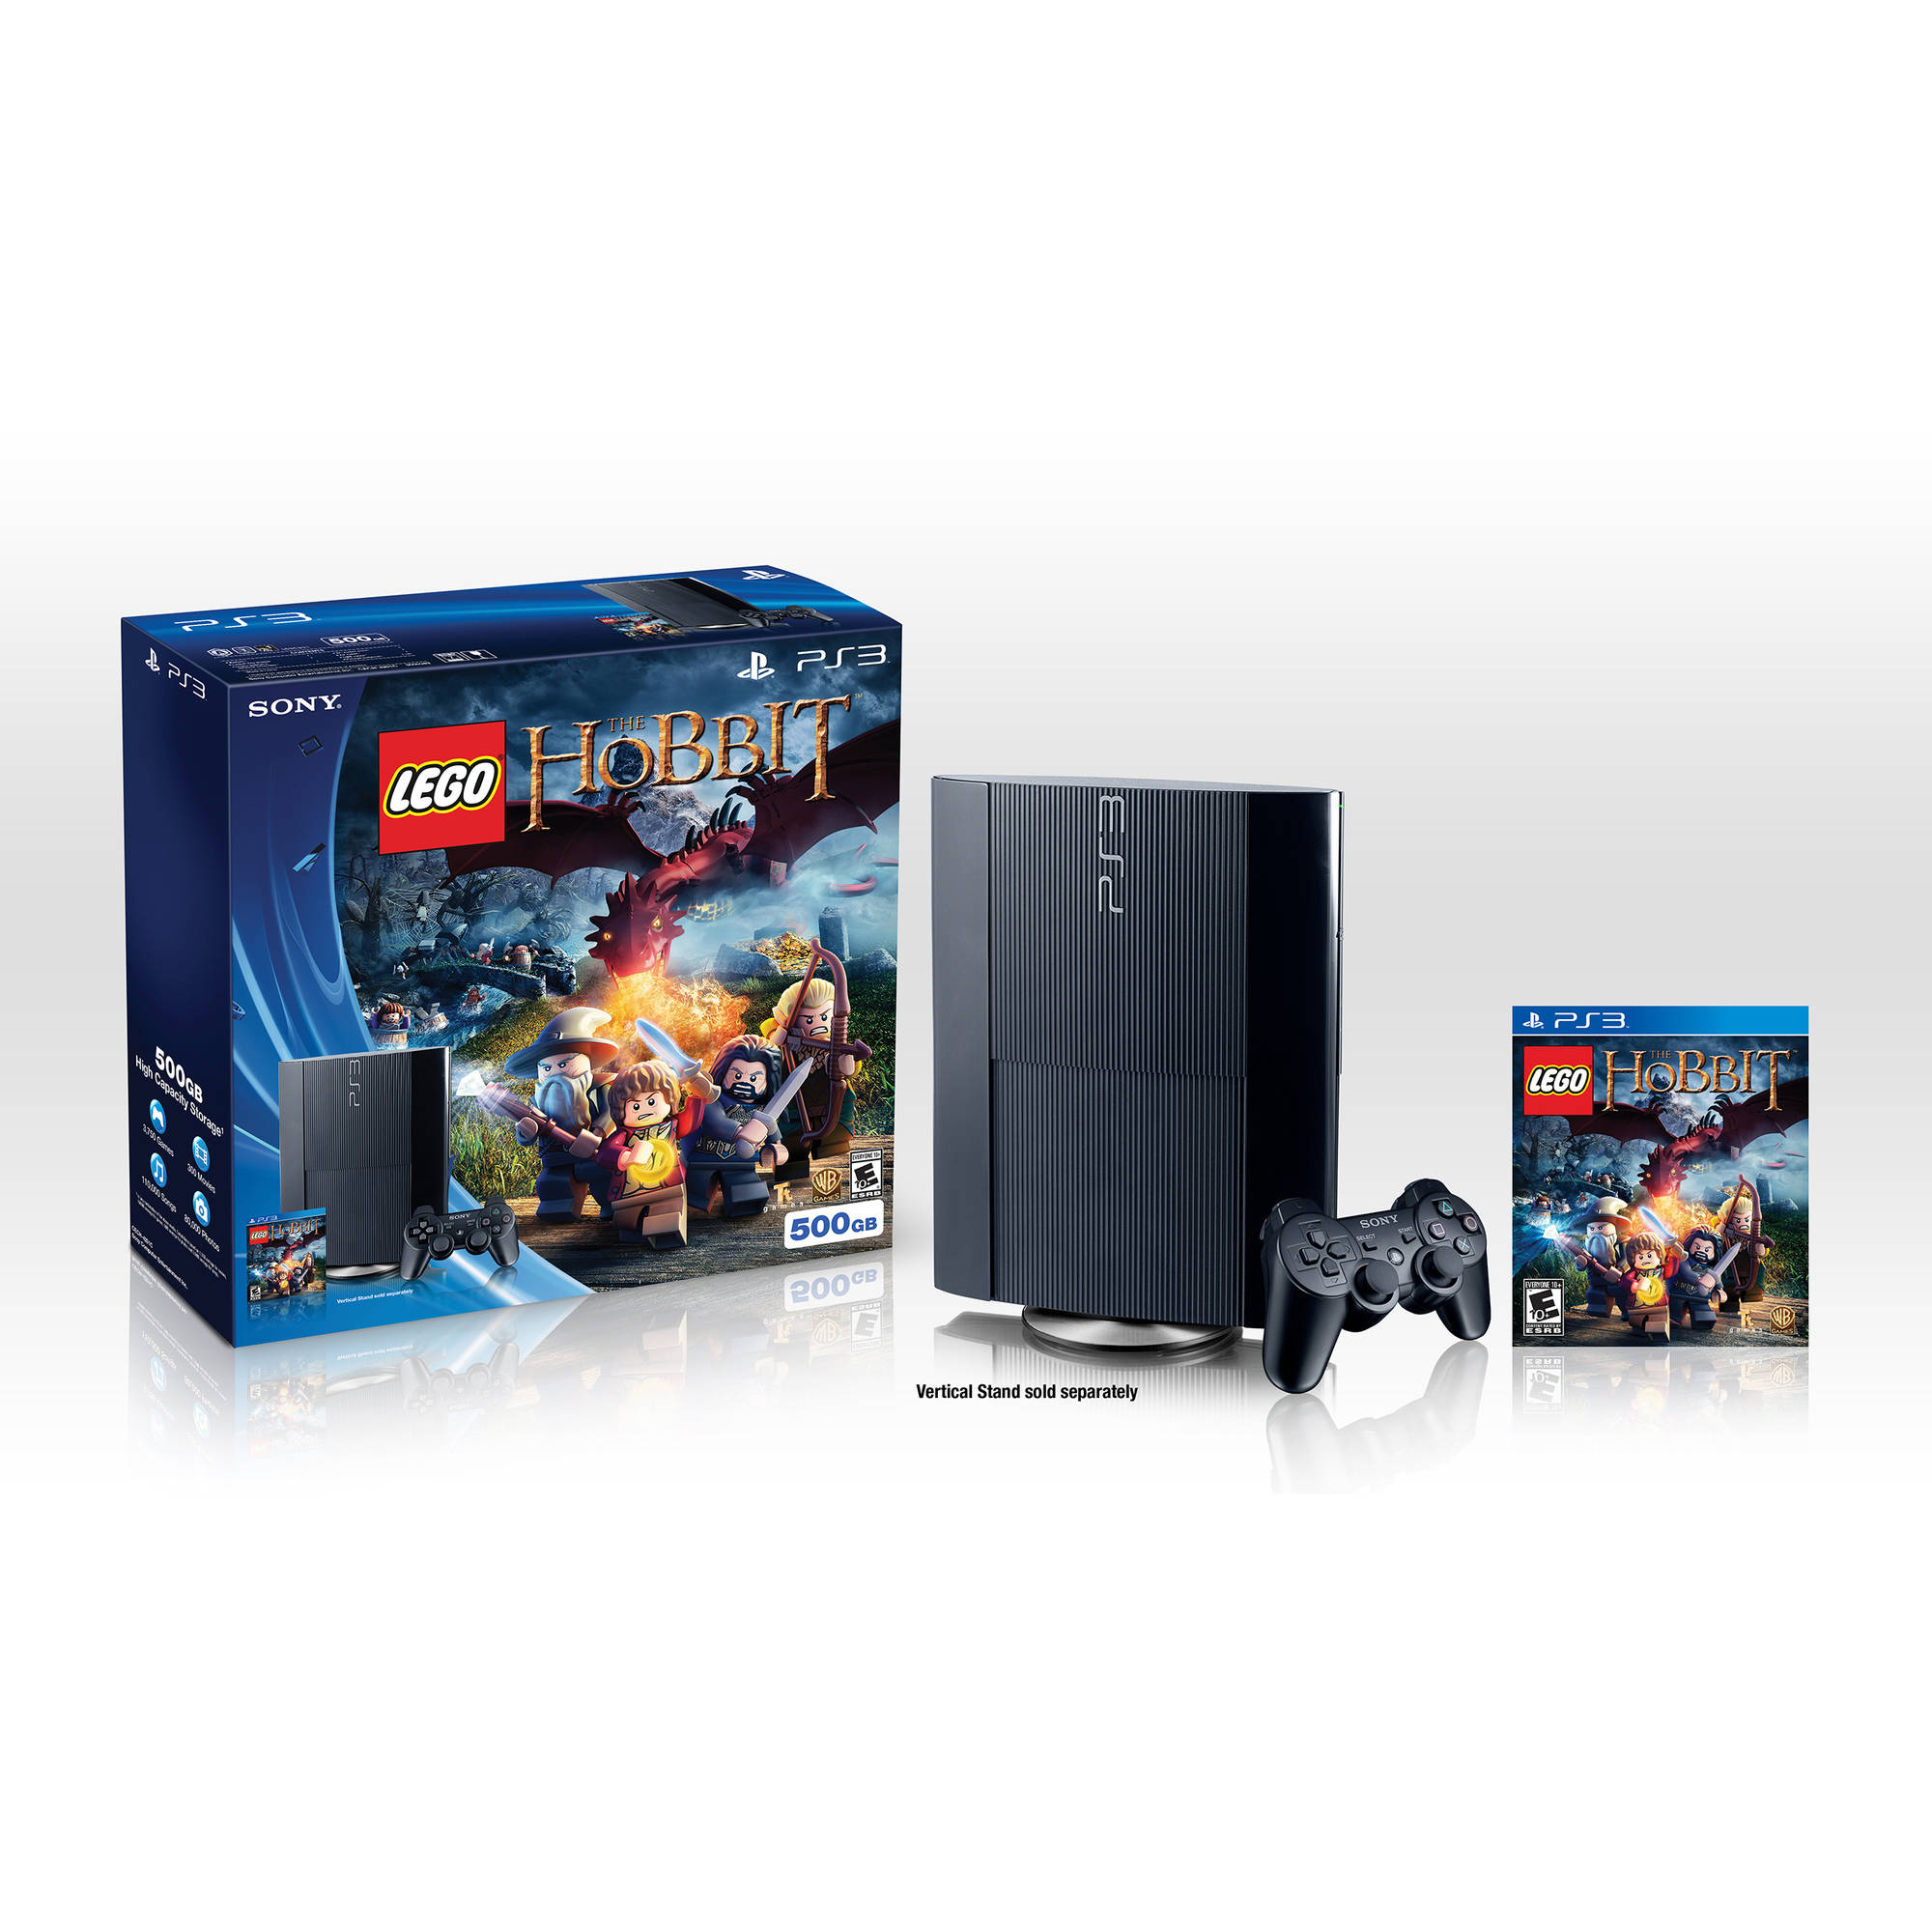 PS3 500GB Console with Lego The Hobbit Bundle